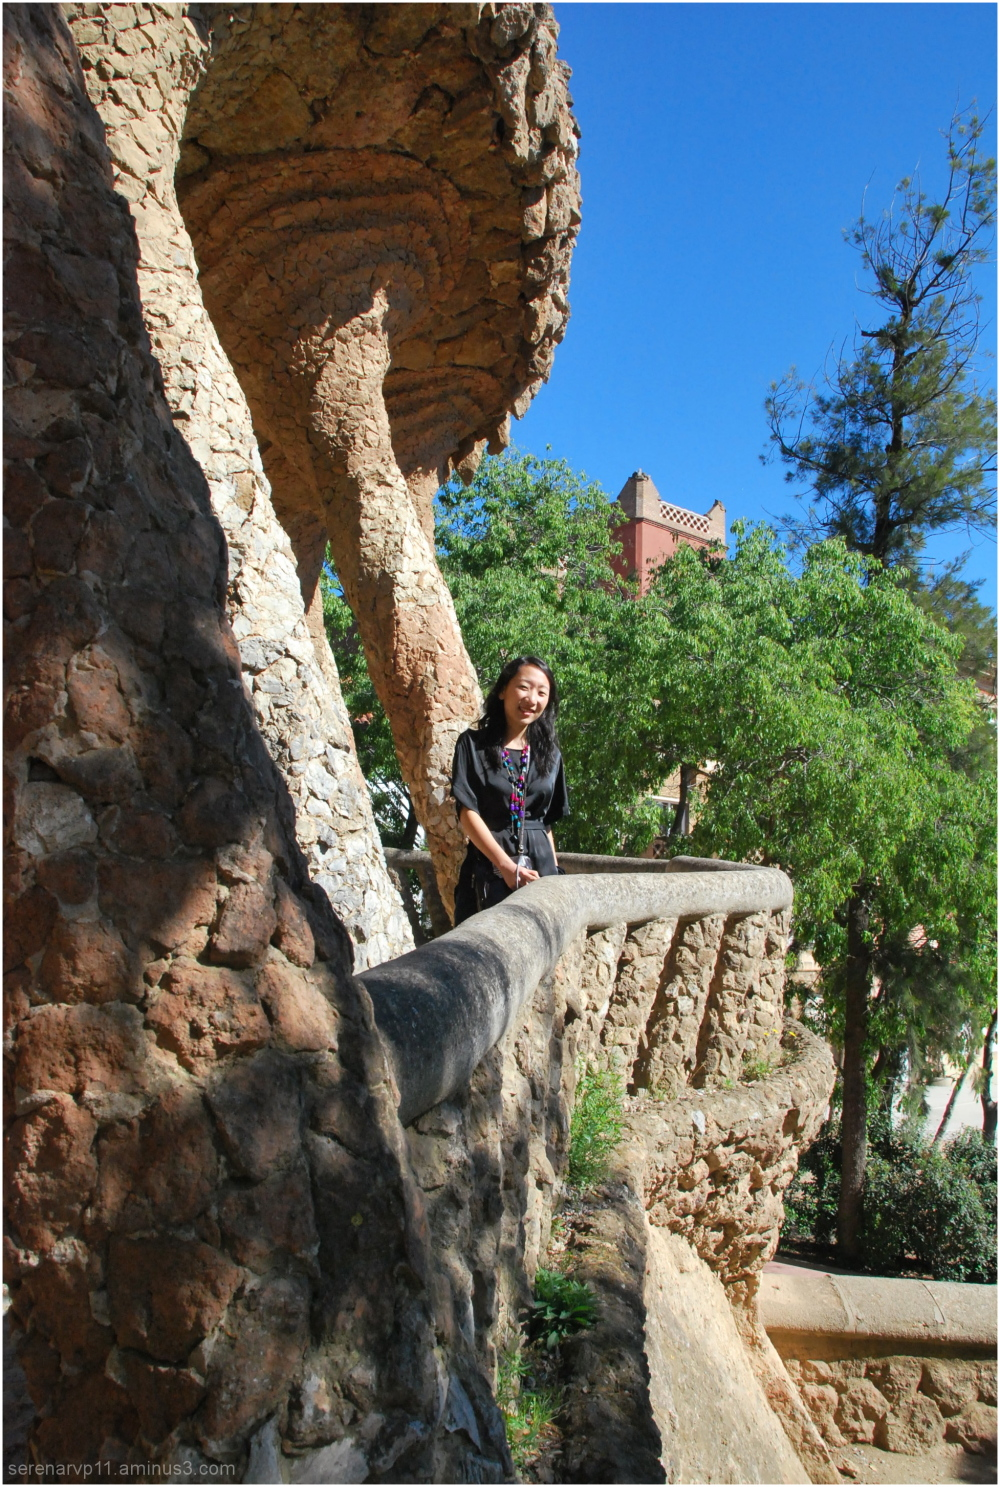 Guell ii